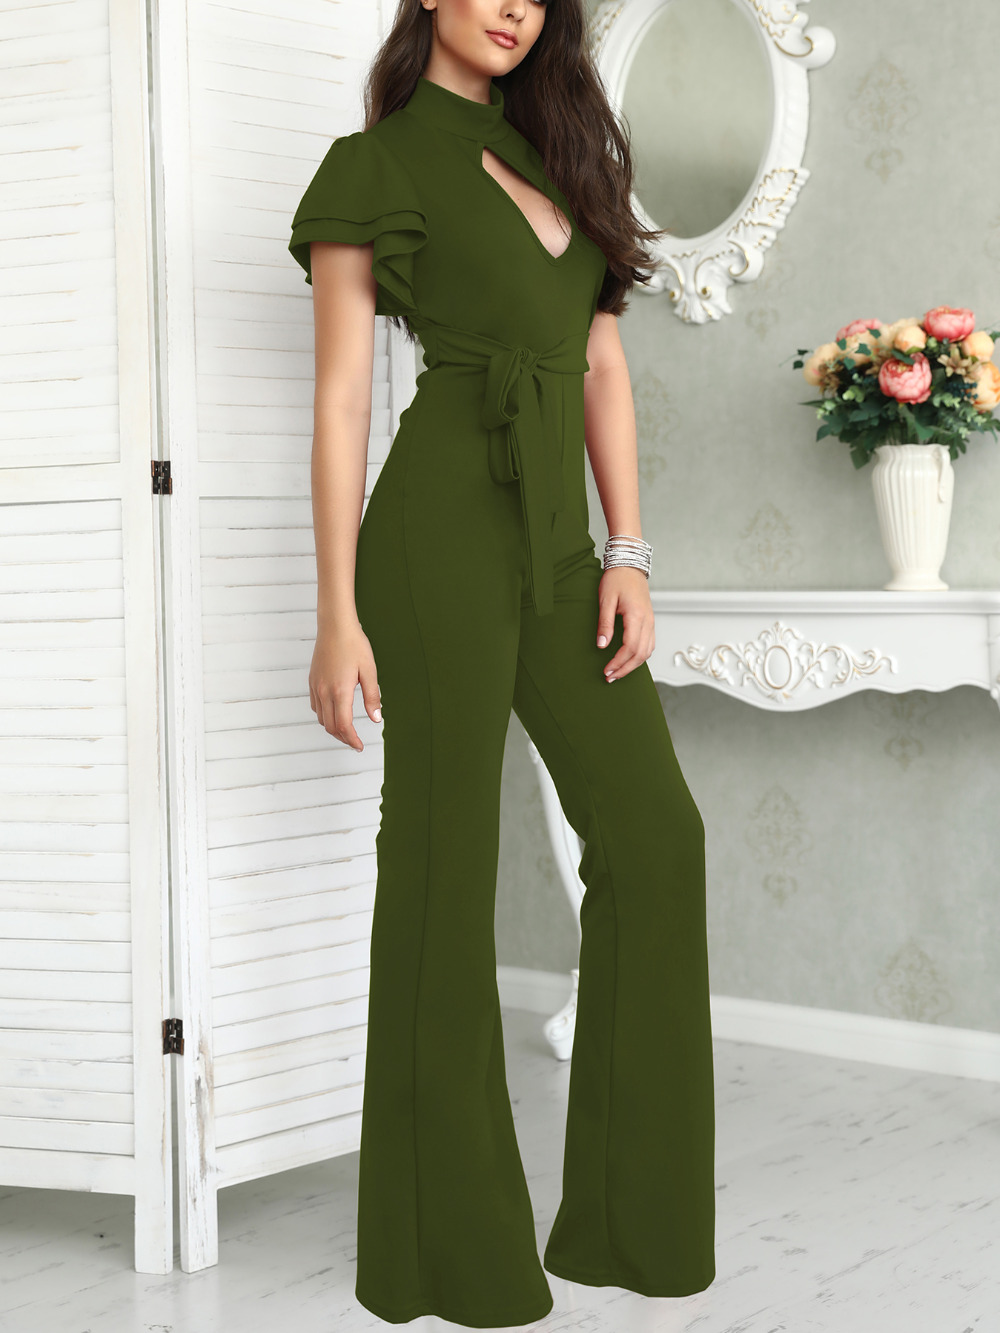 2018 New Fashion Stylish Office Casual Women Elegant Jumpsuit Plus Size Cut Out Flutter Sleeve Belted Flare Hem Jumpsuit ...